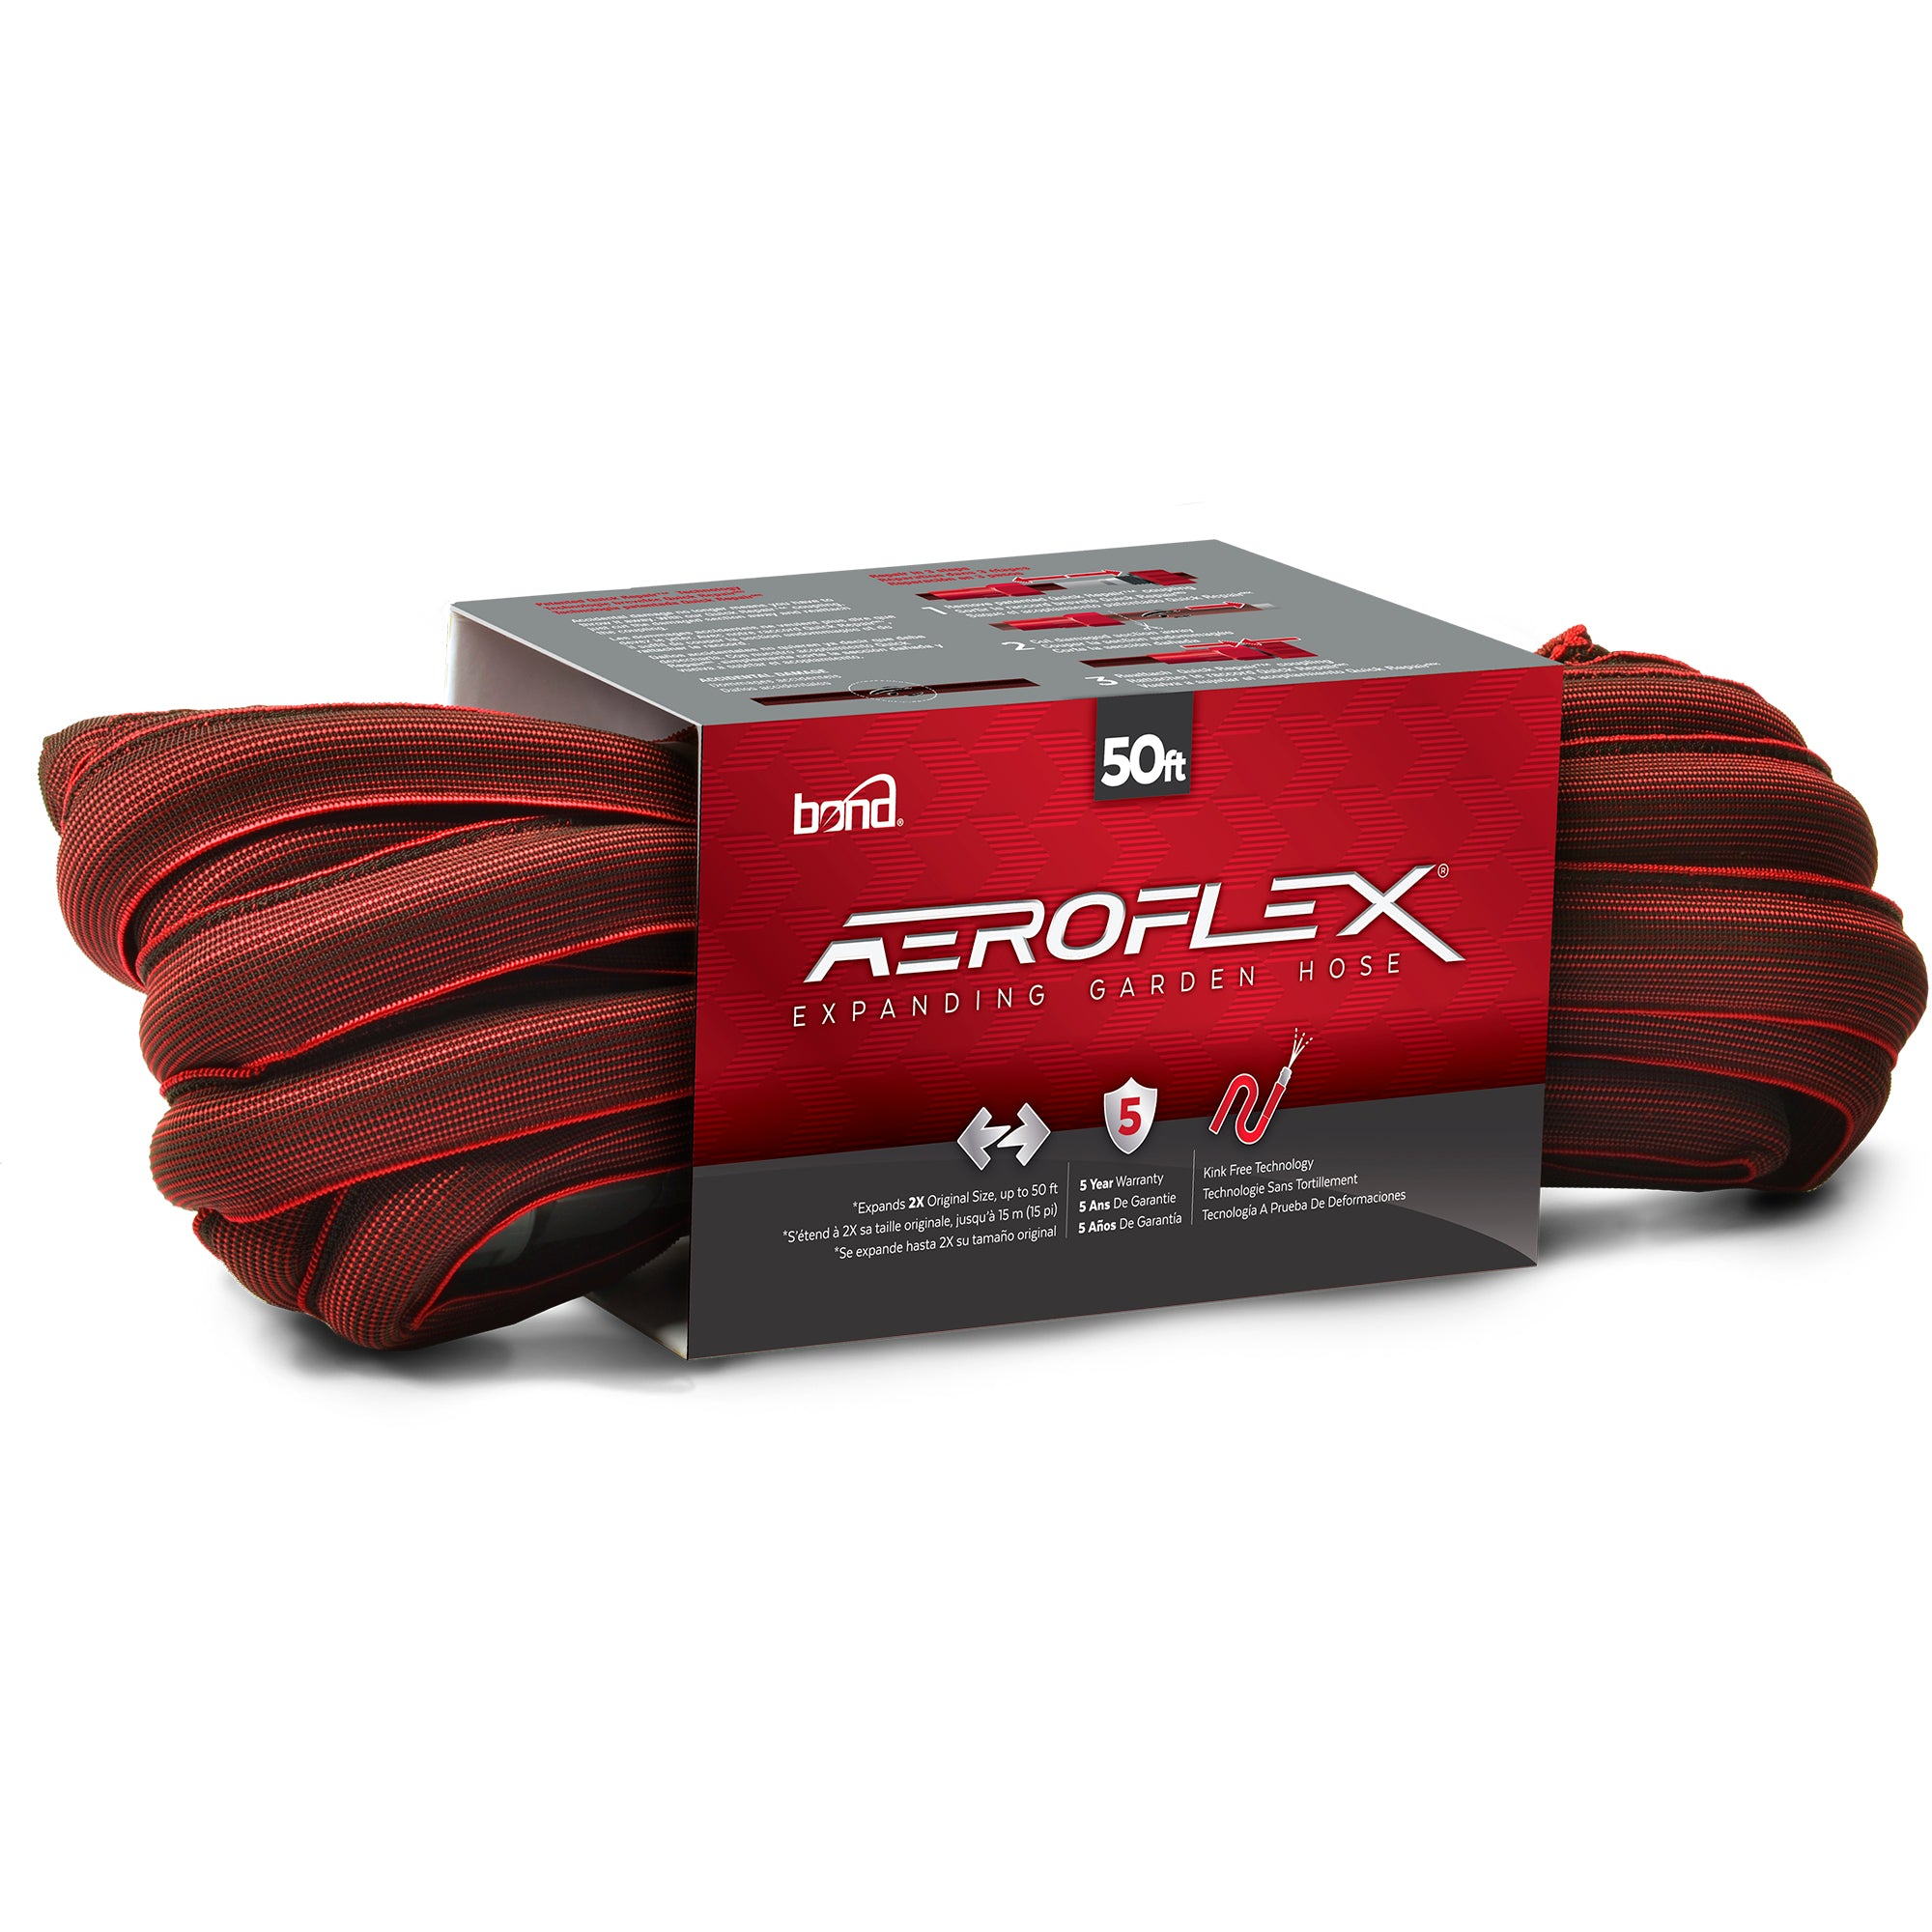 #8200 - Bond 50ft Aeroflex Stretch Fabric Hose